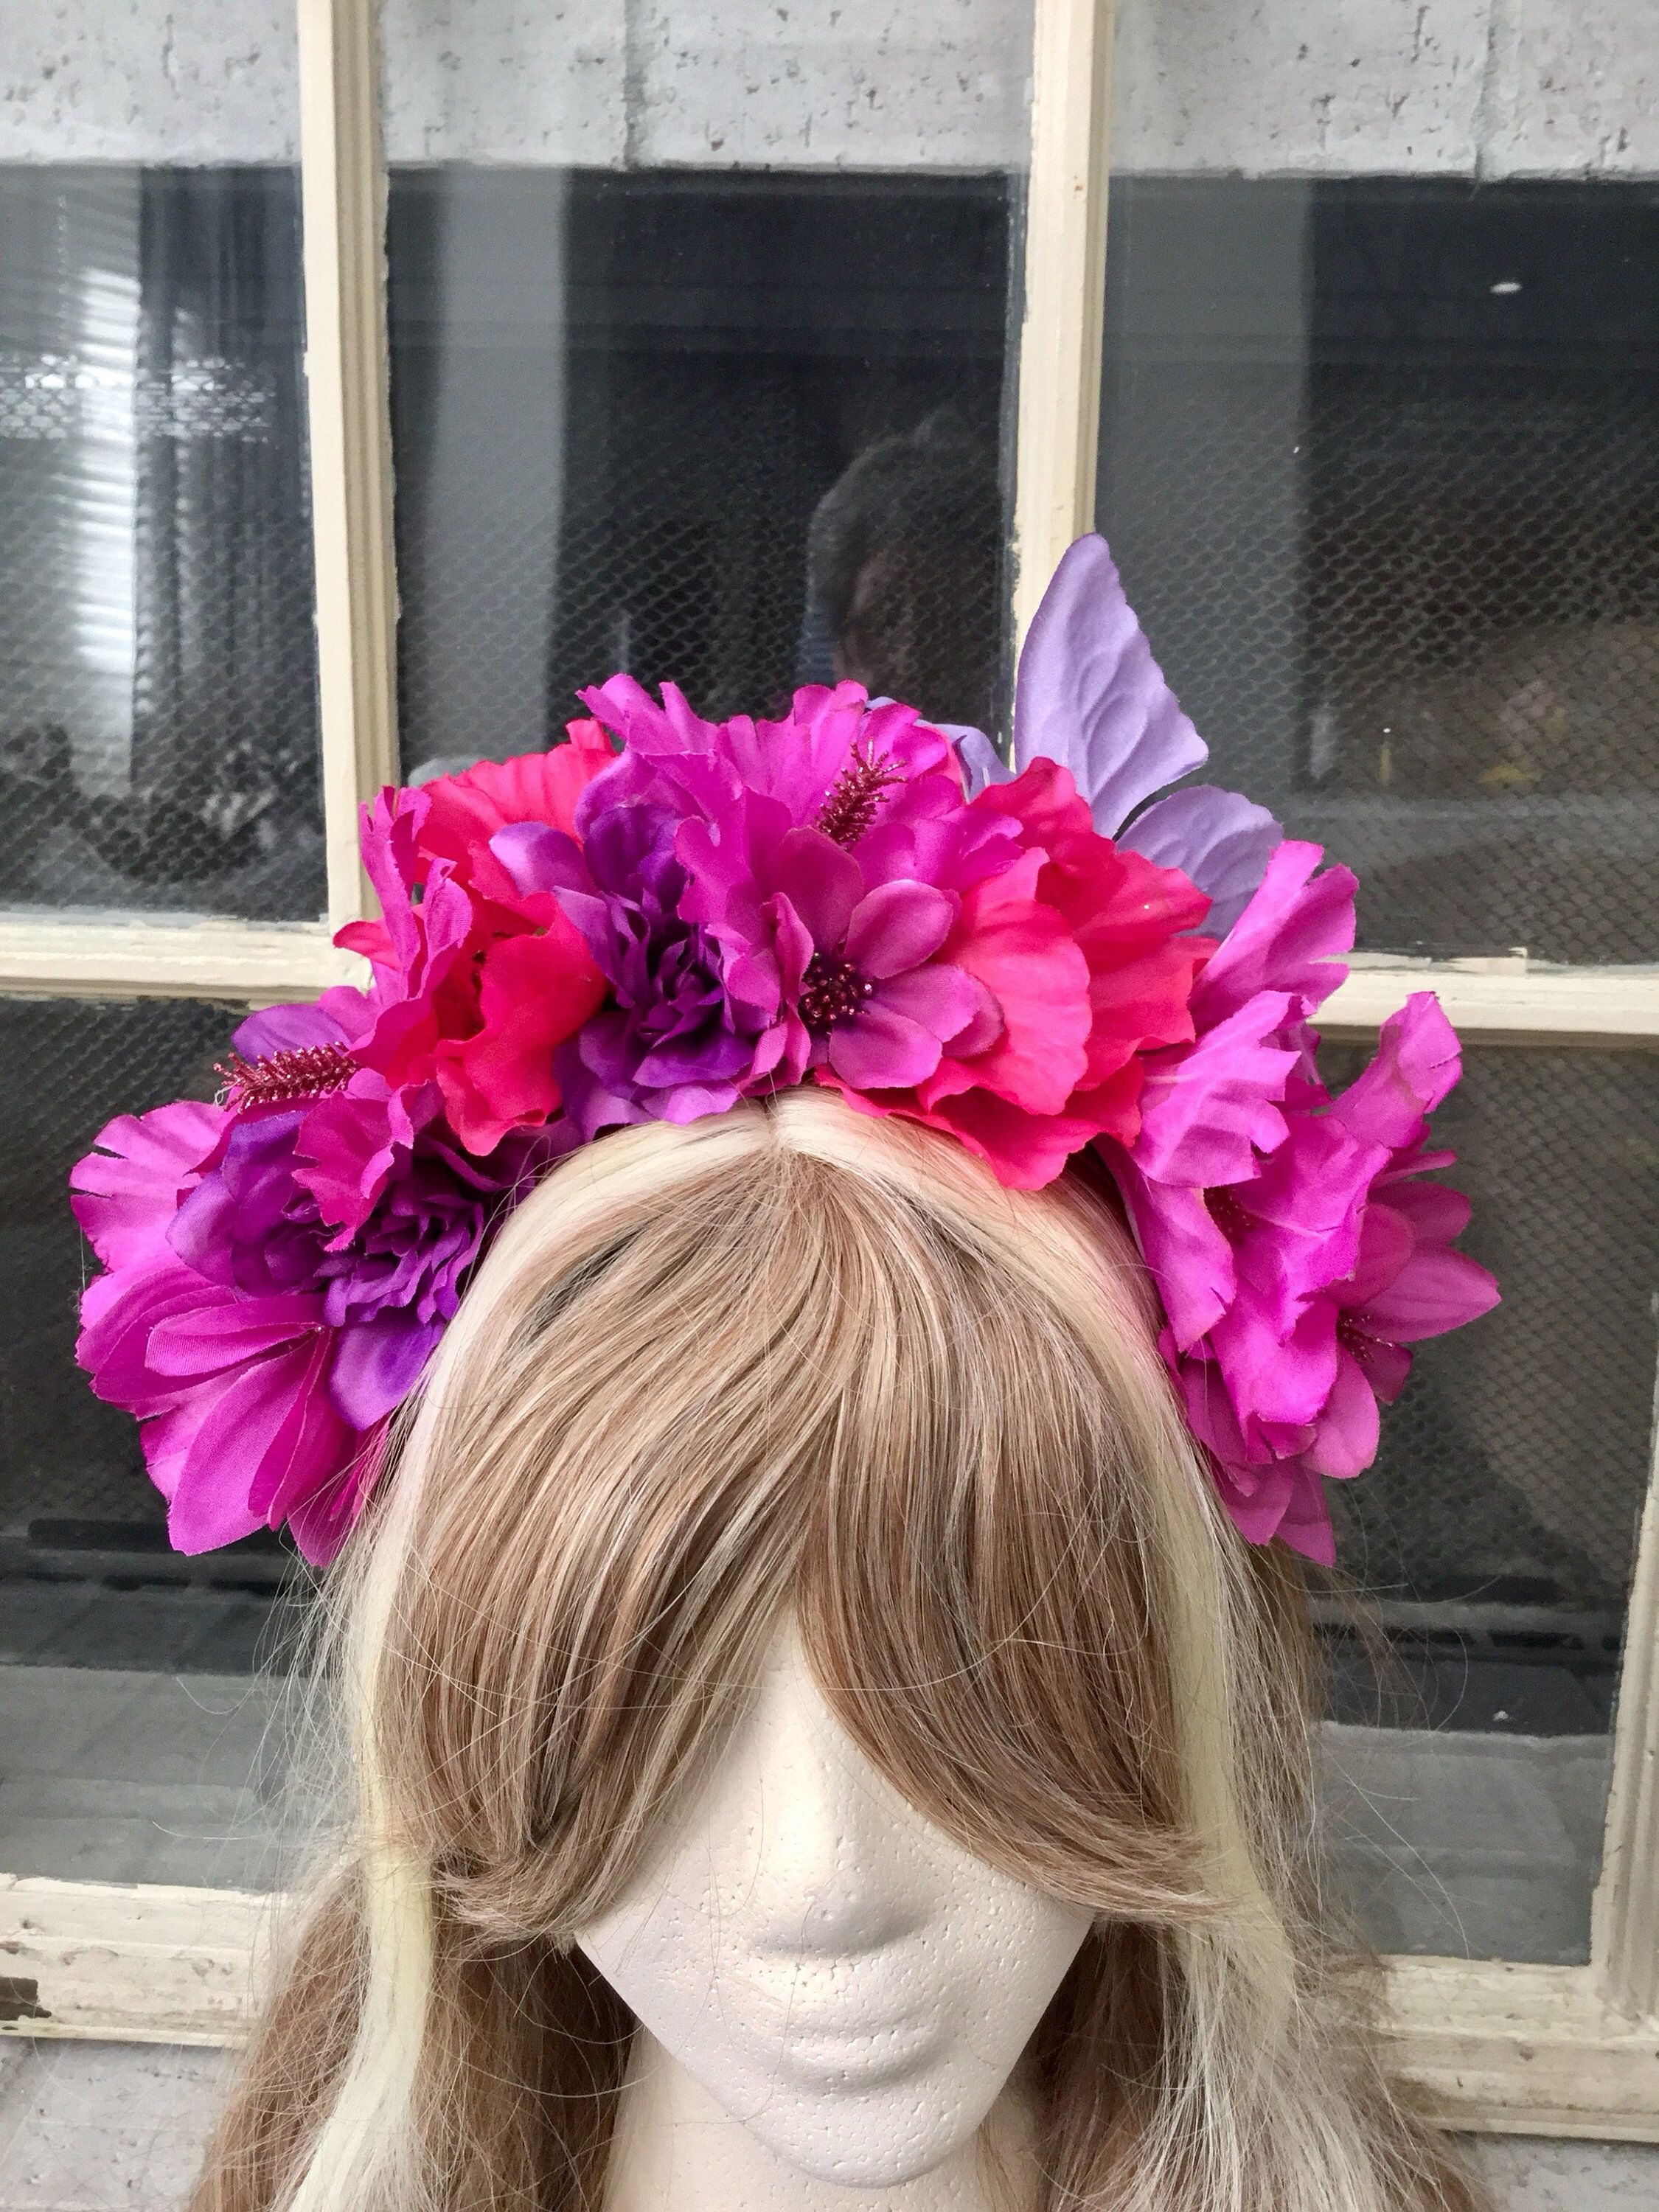 Excited to share this item from my etsy shop beautiful tropical excited to share this item from my etsy shop beautiful tropical flower headband fits all sizes izmirmasajfo